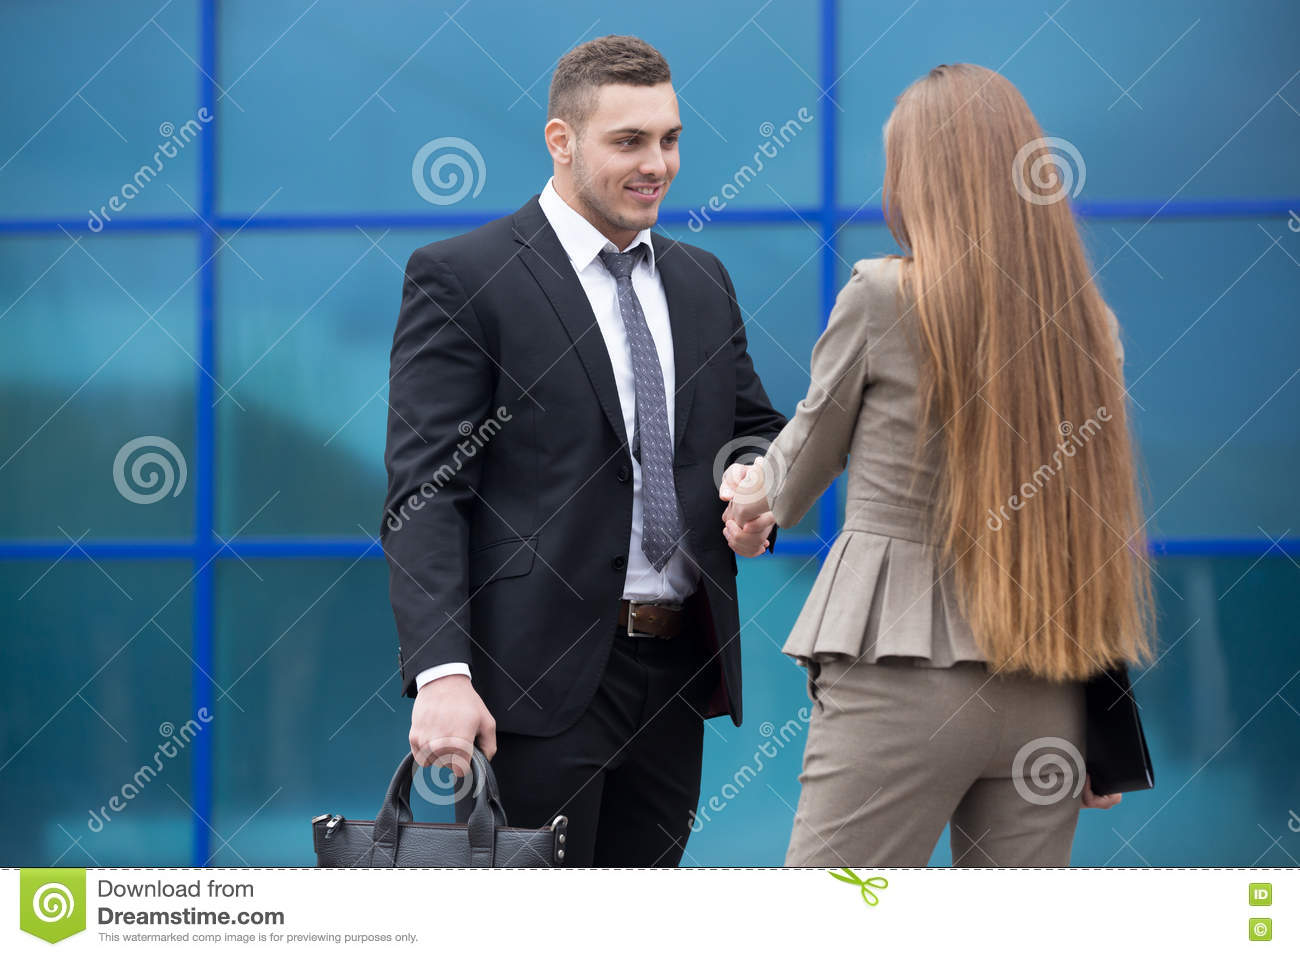 Business people handshake greeting deal at work photo free download - Agreement Business Businessman Businesspeople